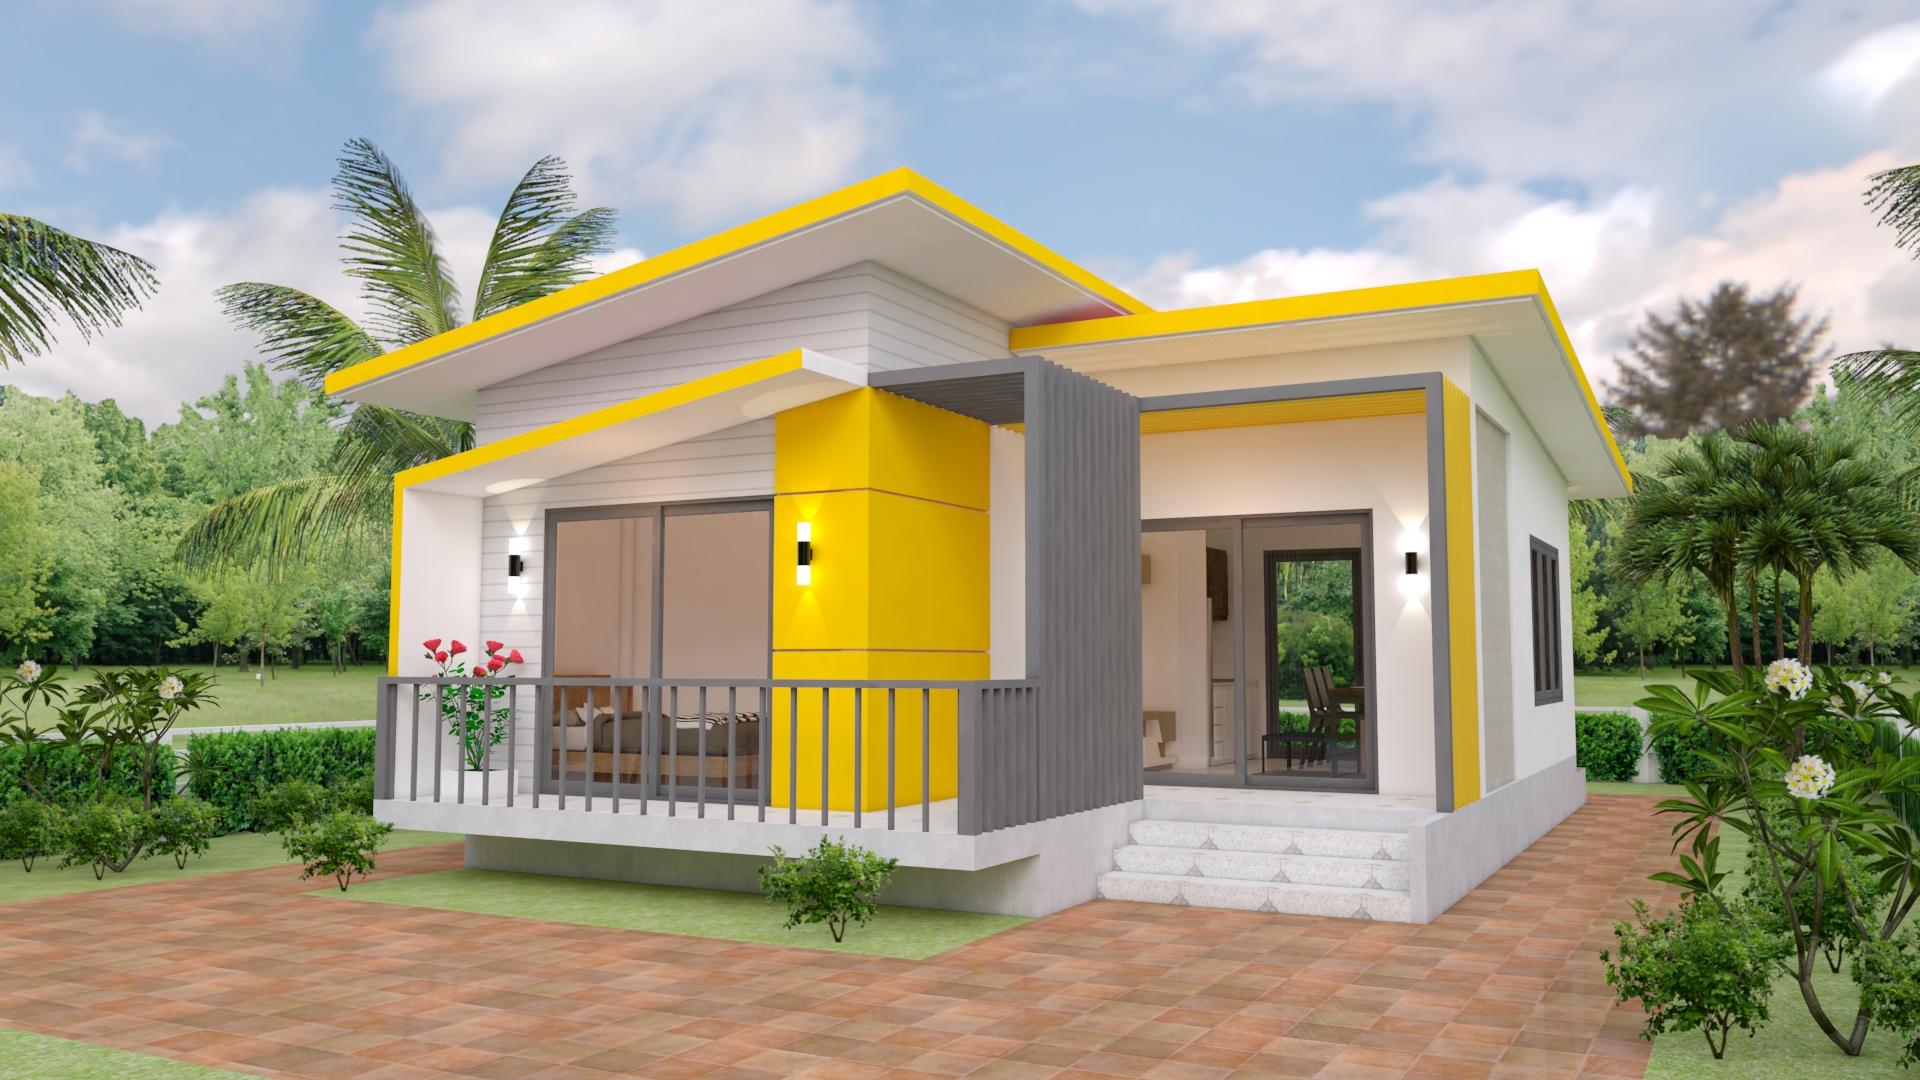 House Plans 7.5x11 with 2 Bedrooms Full plans 1 - Download Two Bedroom Small Simple Small House Designs Pictures